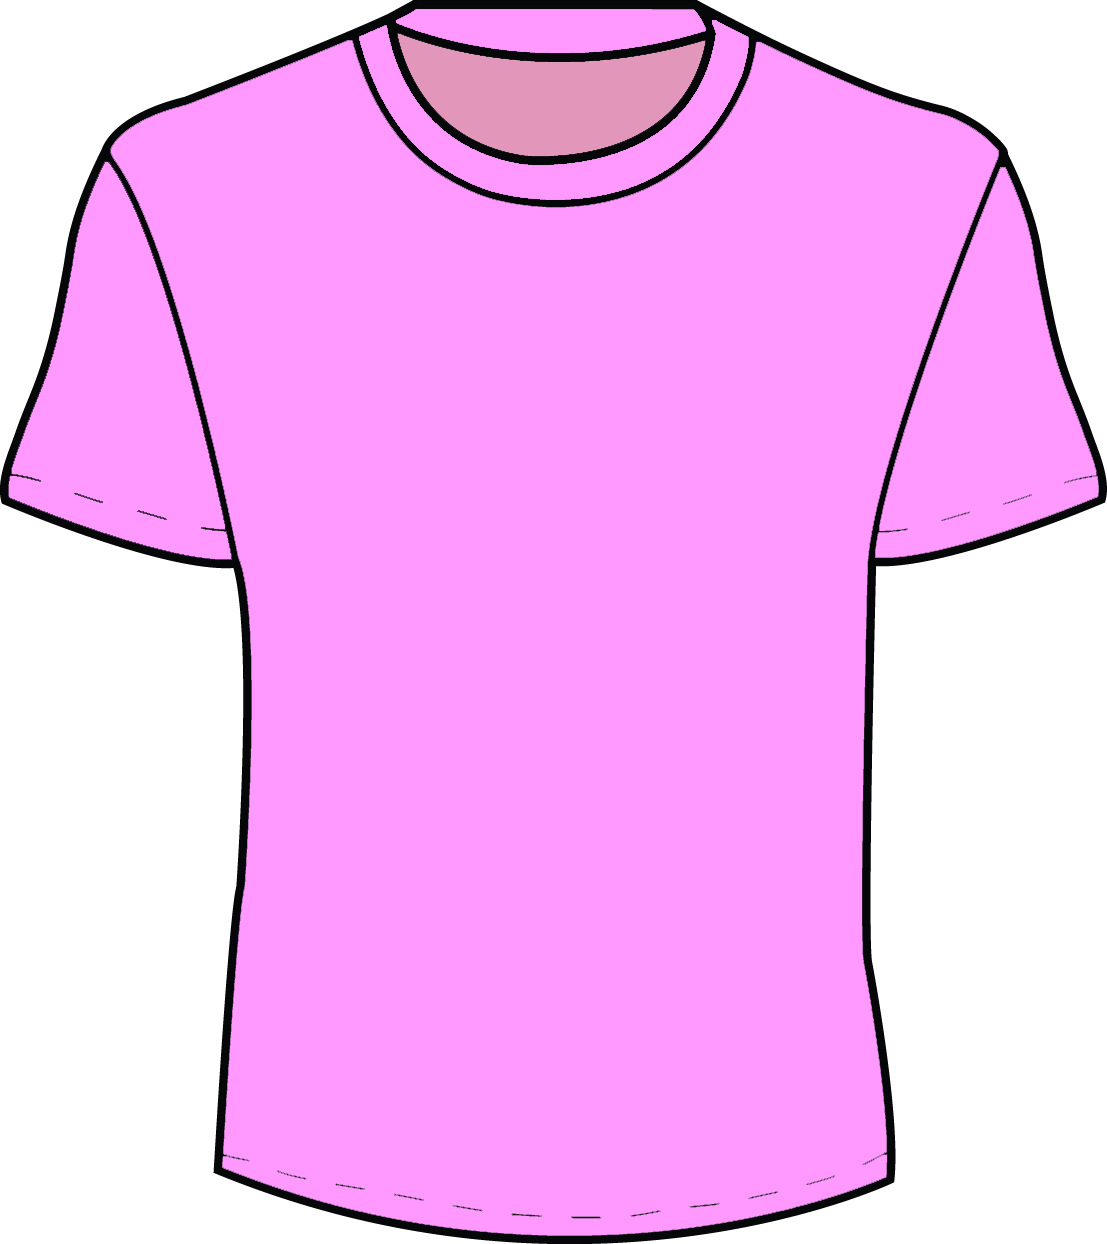 Girls clipart blouse, Girls blouse Transparent FREE for.